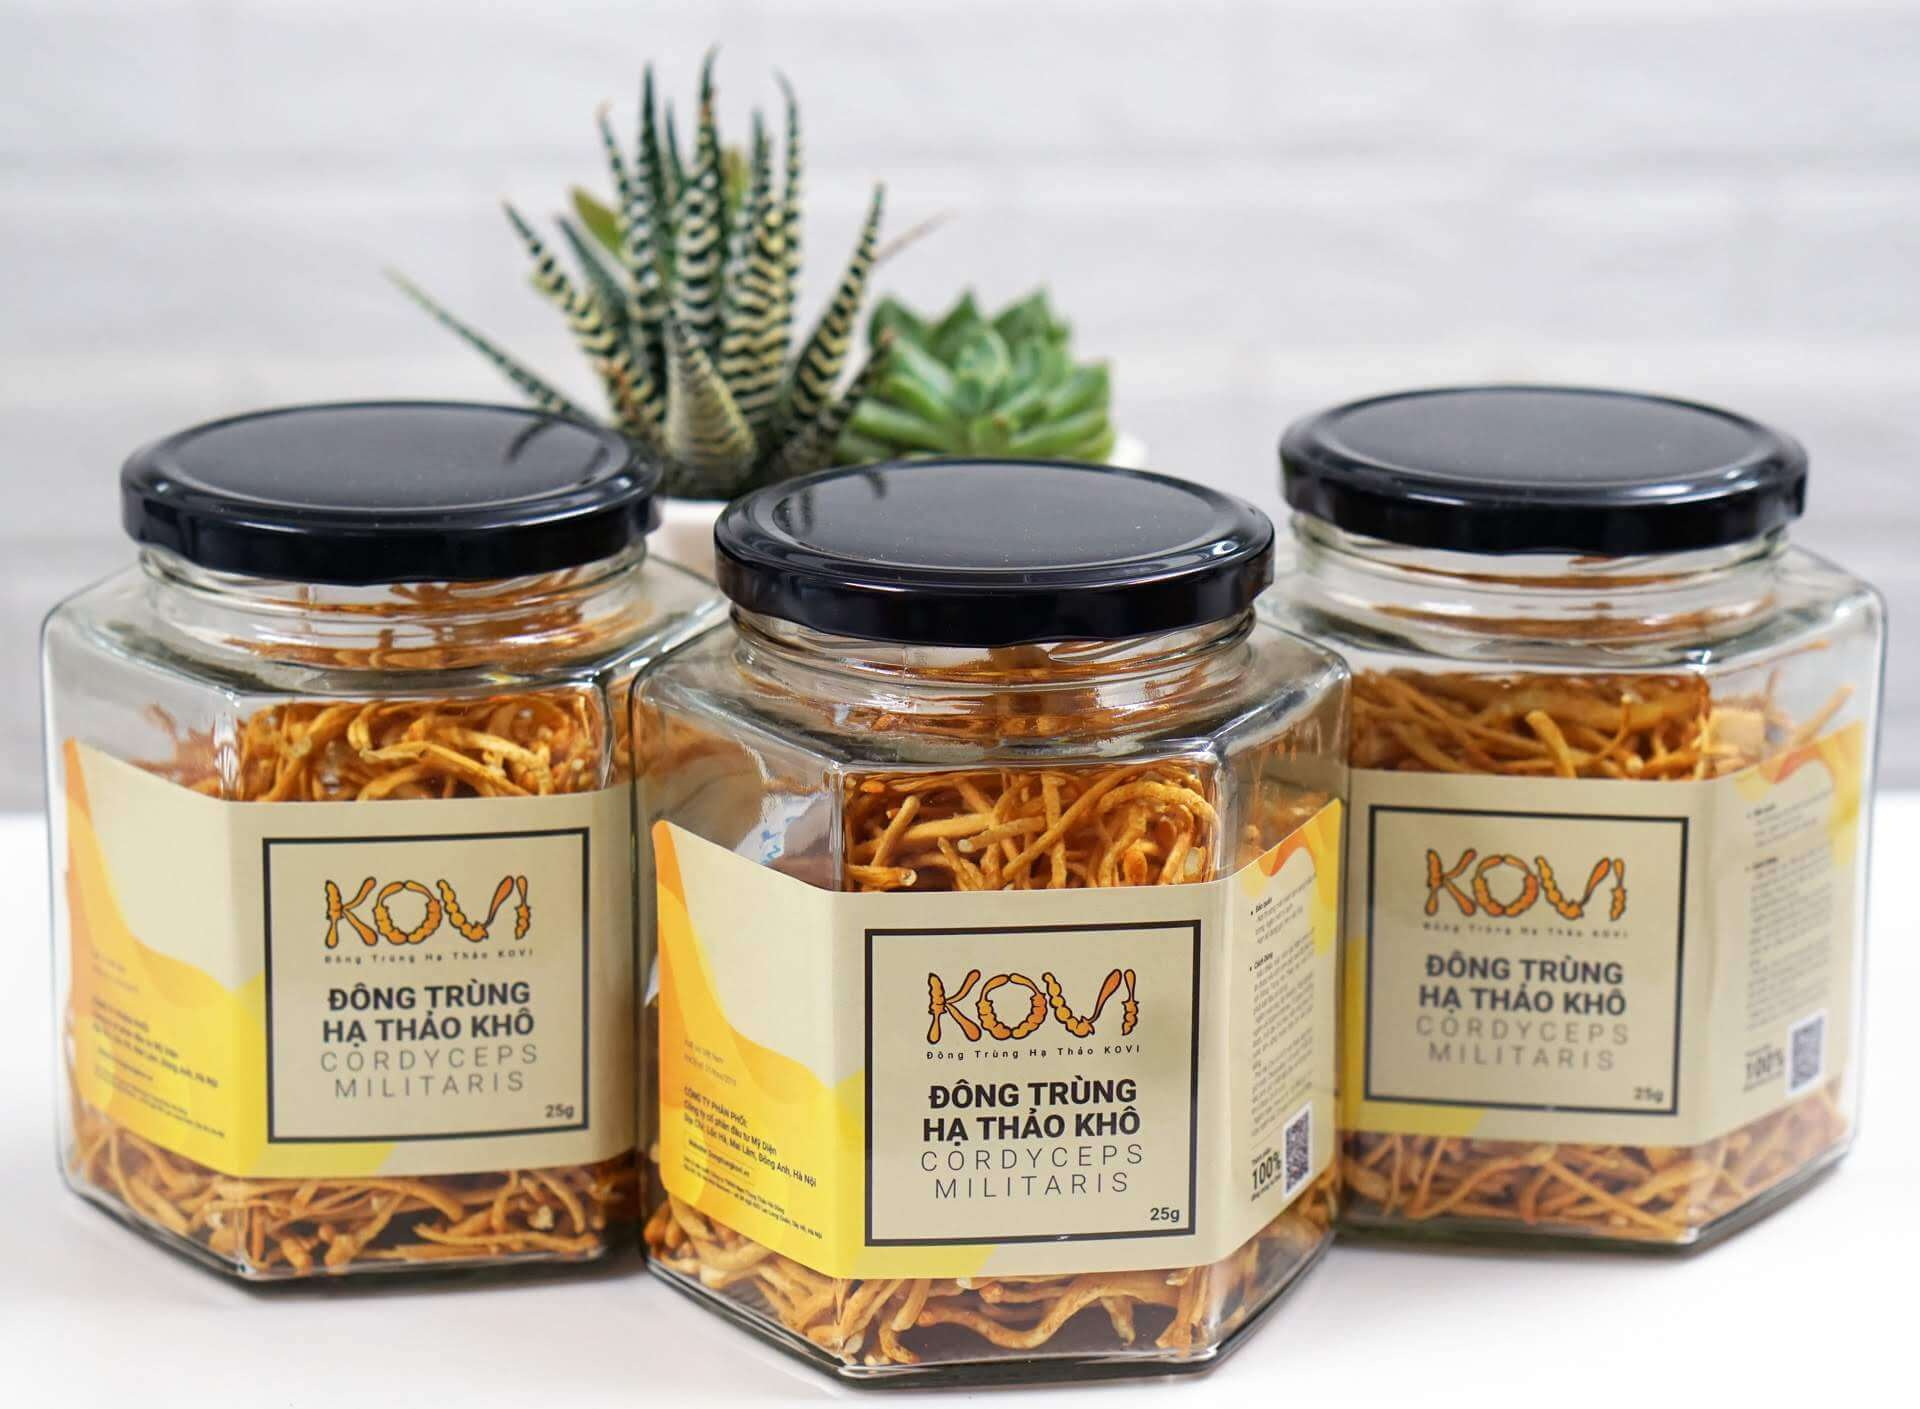 Dried cordyceps are produced by sublimation drying method